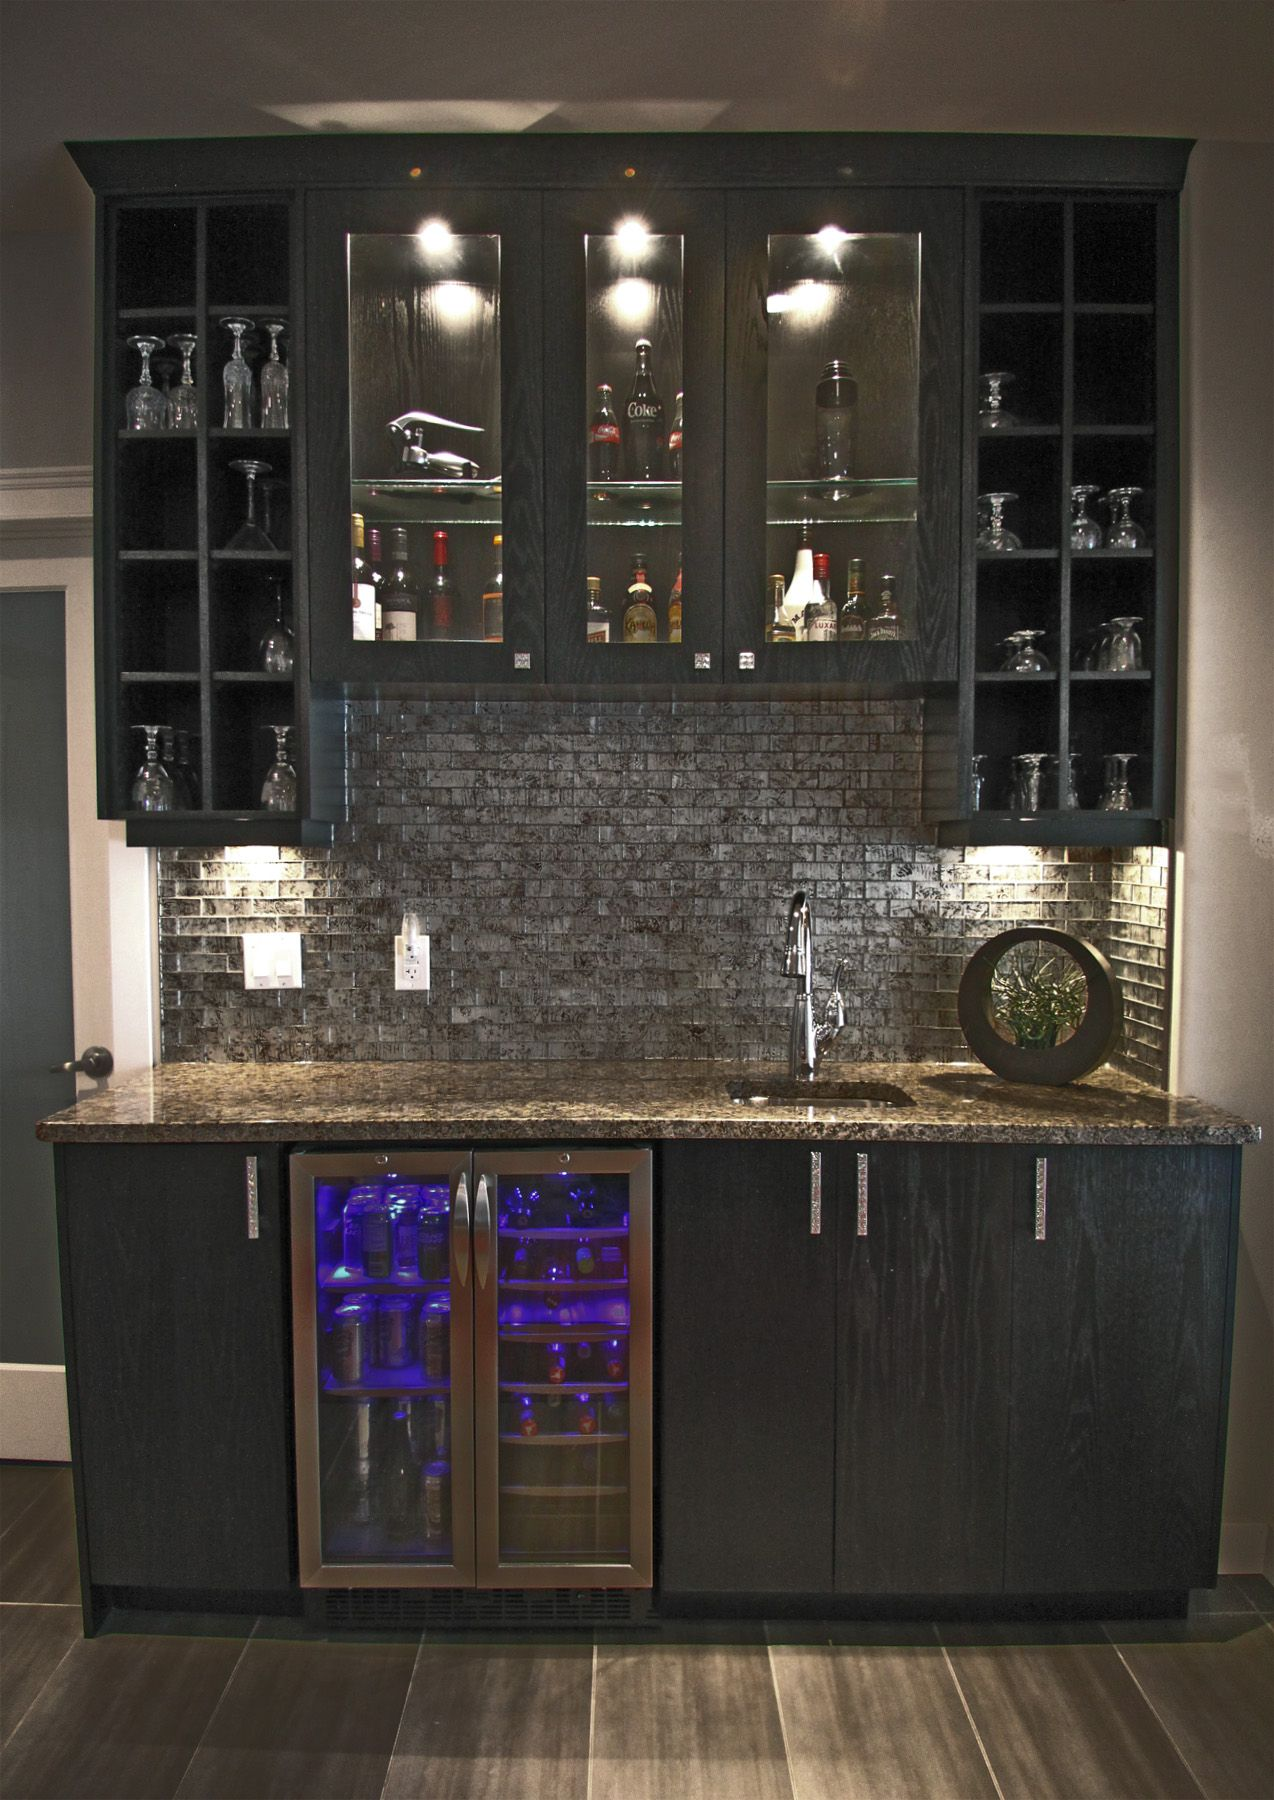 Gentil Home Wet Bar Designs W/ Glass Backsplash, Built In Counter Height Beverage  Cooler In Stainless Steel.